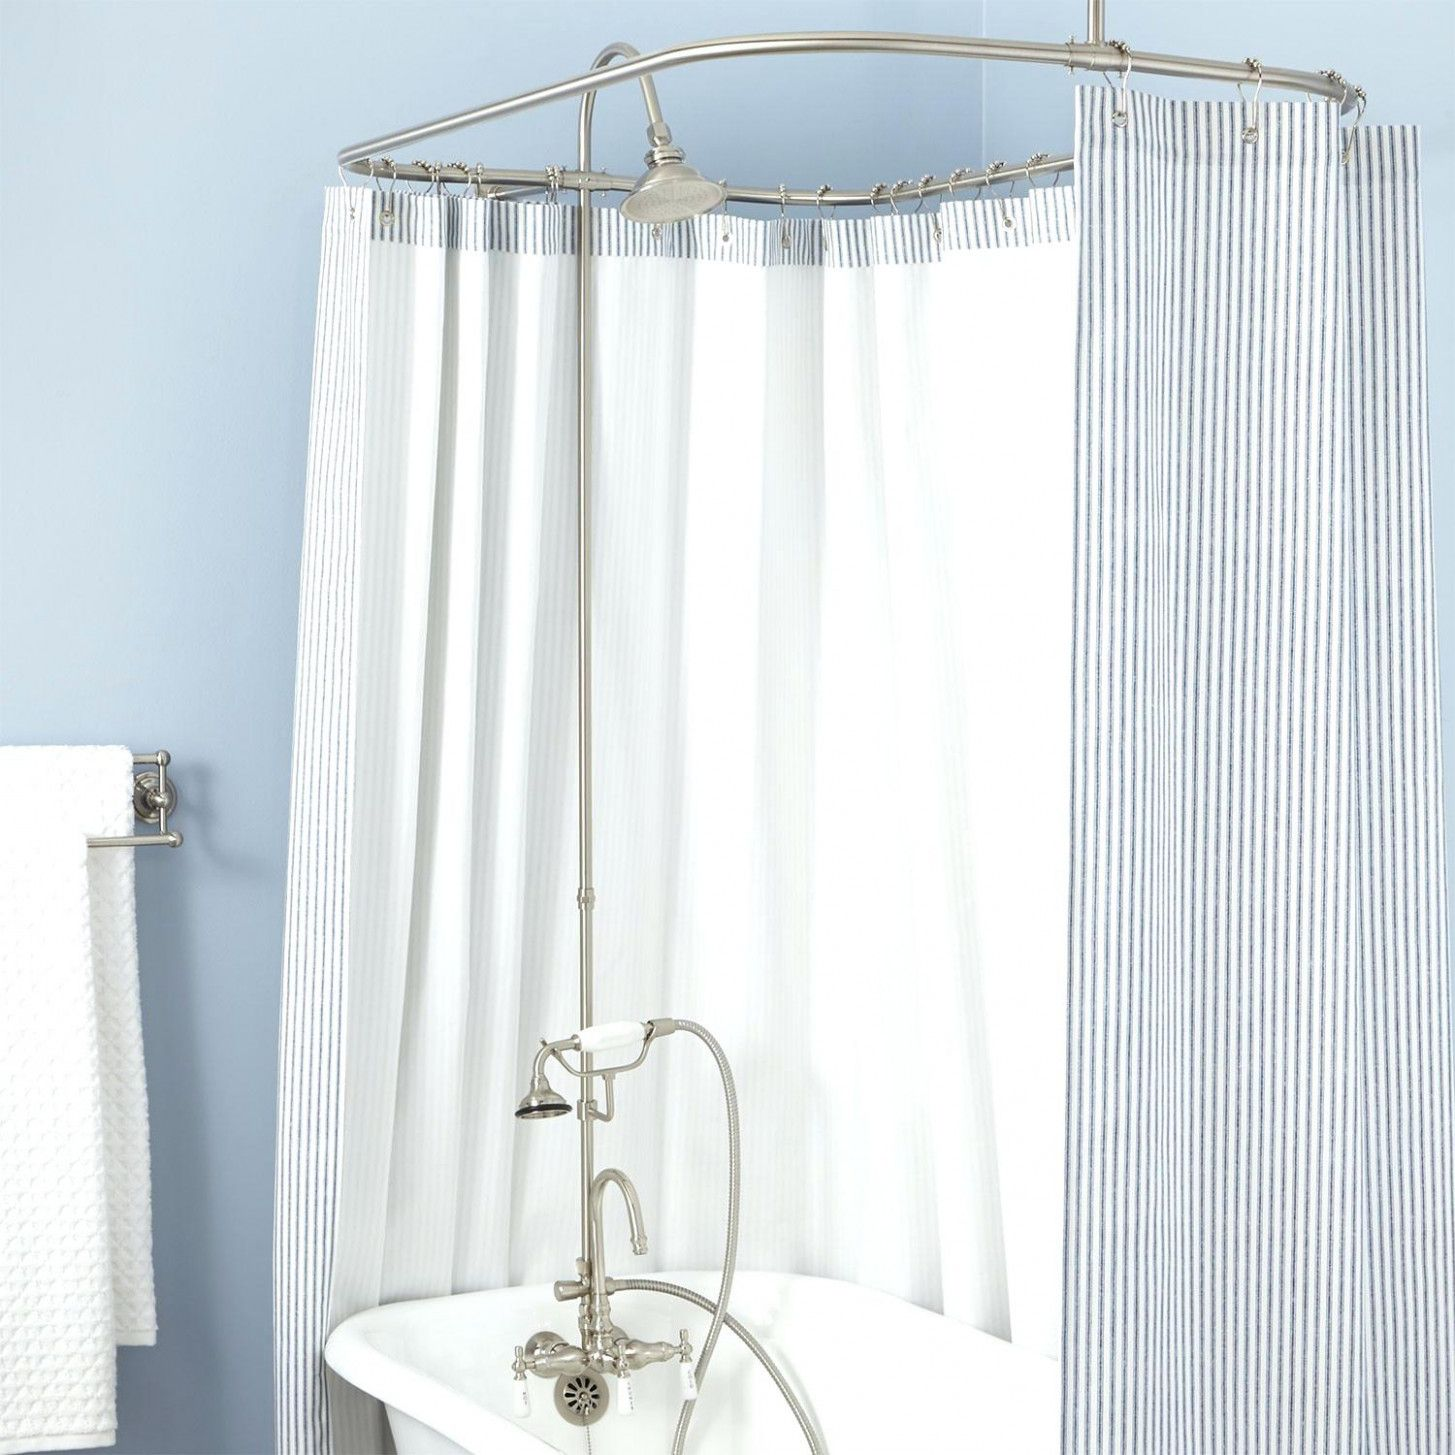 Shower Curtain Hook Alternatives Shower Curtains Design